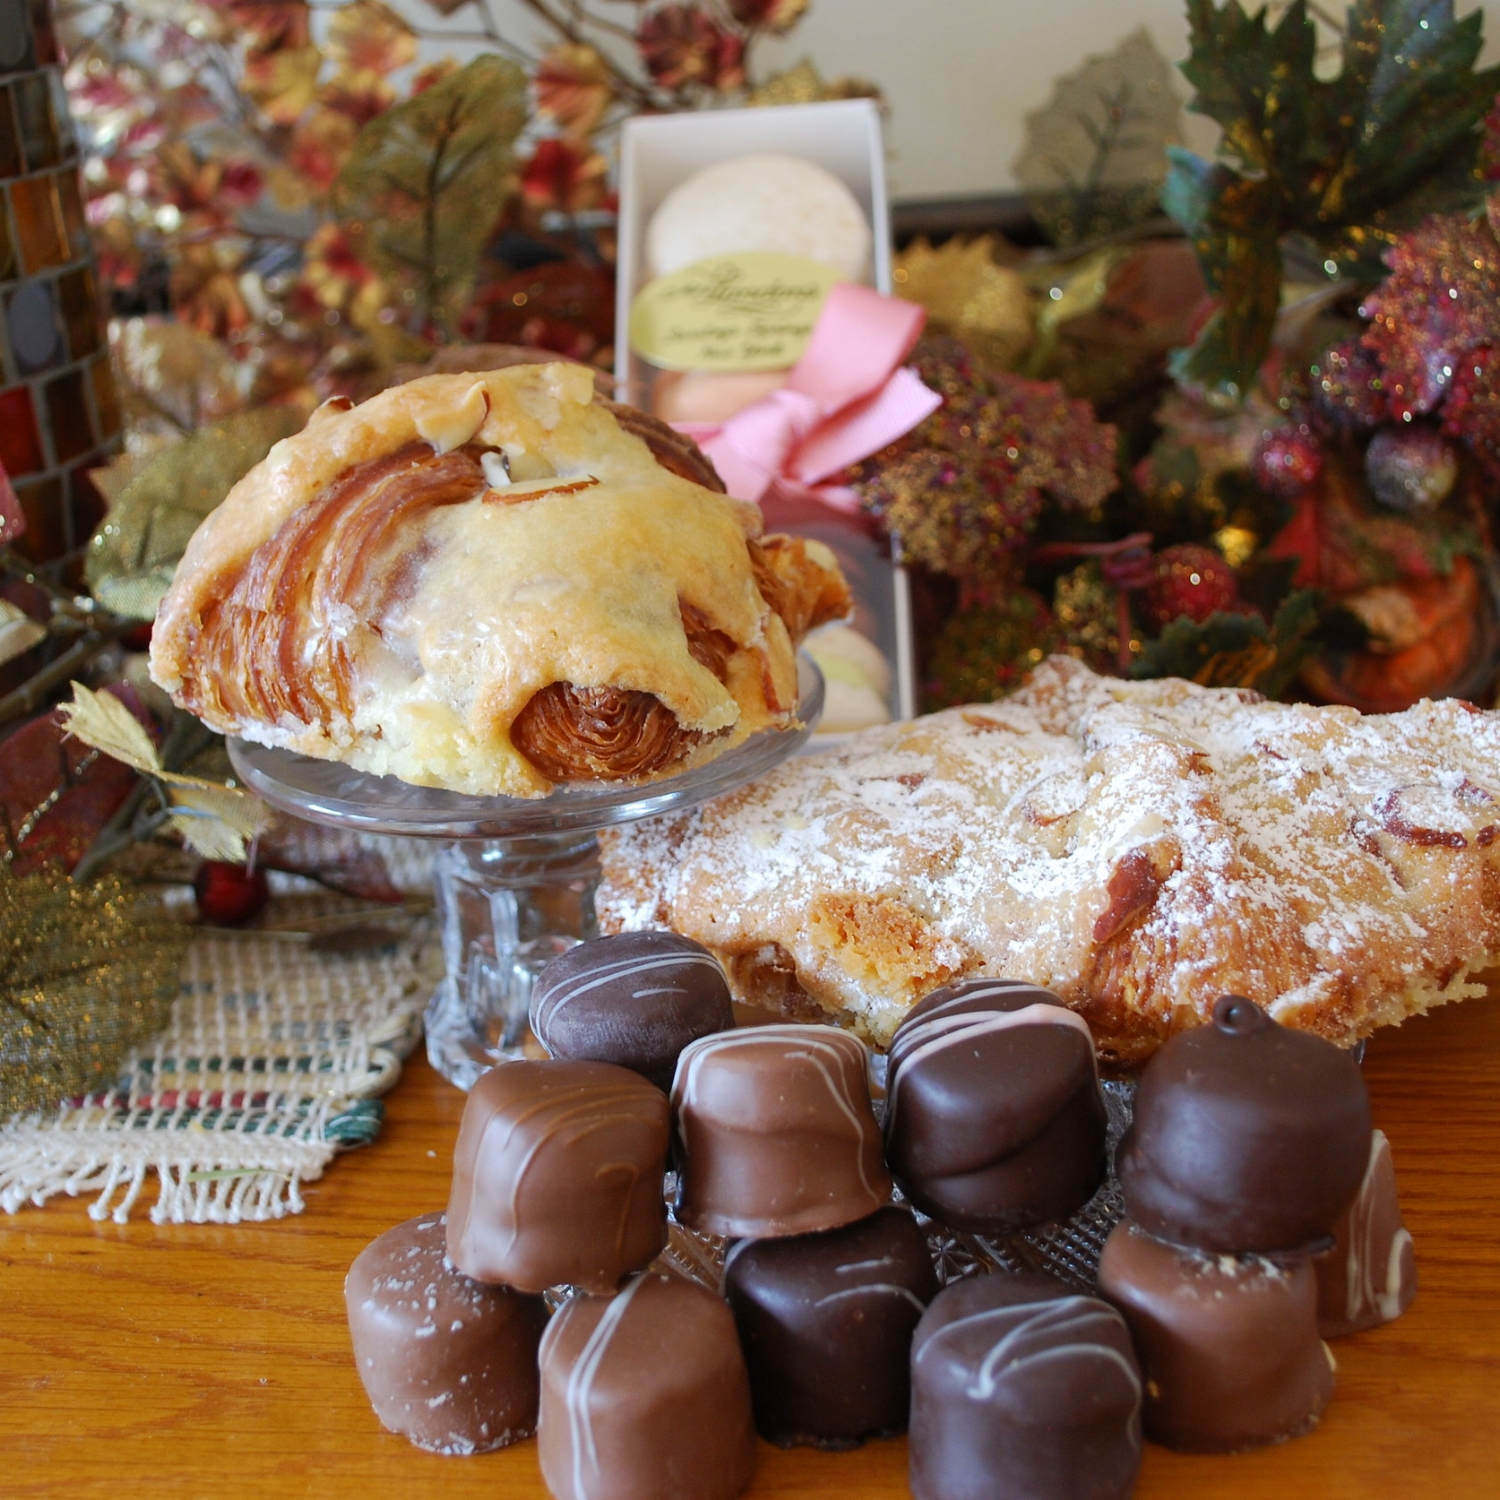 Who doesn't like a souvenir? Pastries from  Mrs.London's  and chocolates from  Kilwins  changed our trip status from an overnight to a luxuriously delectable overnight!